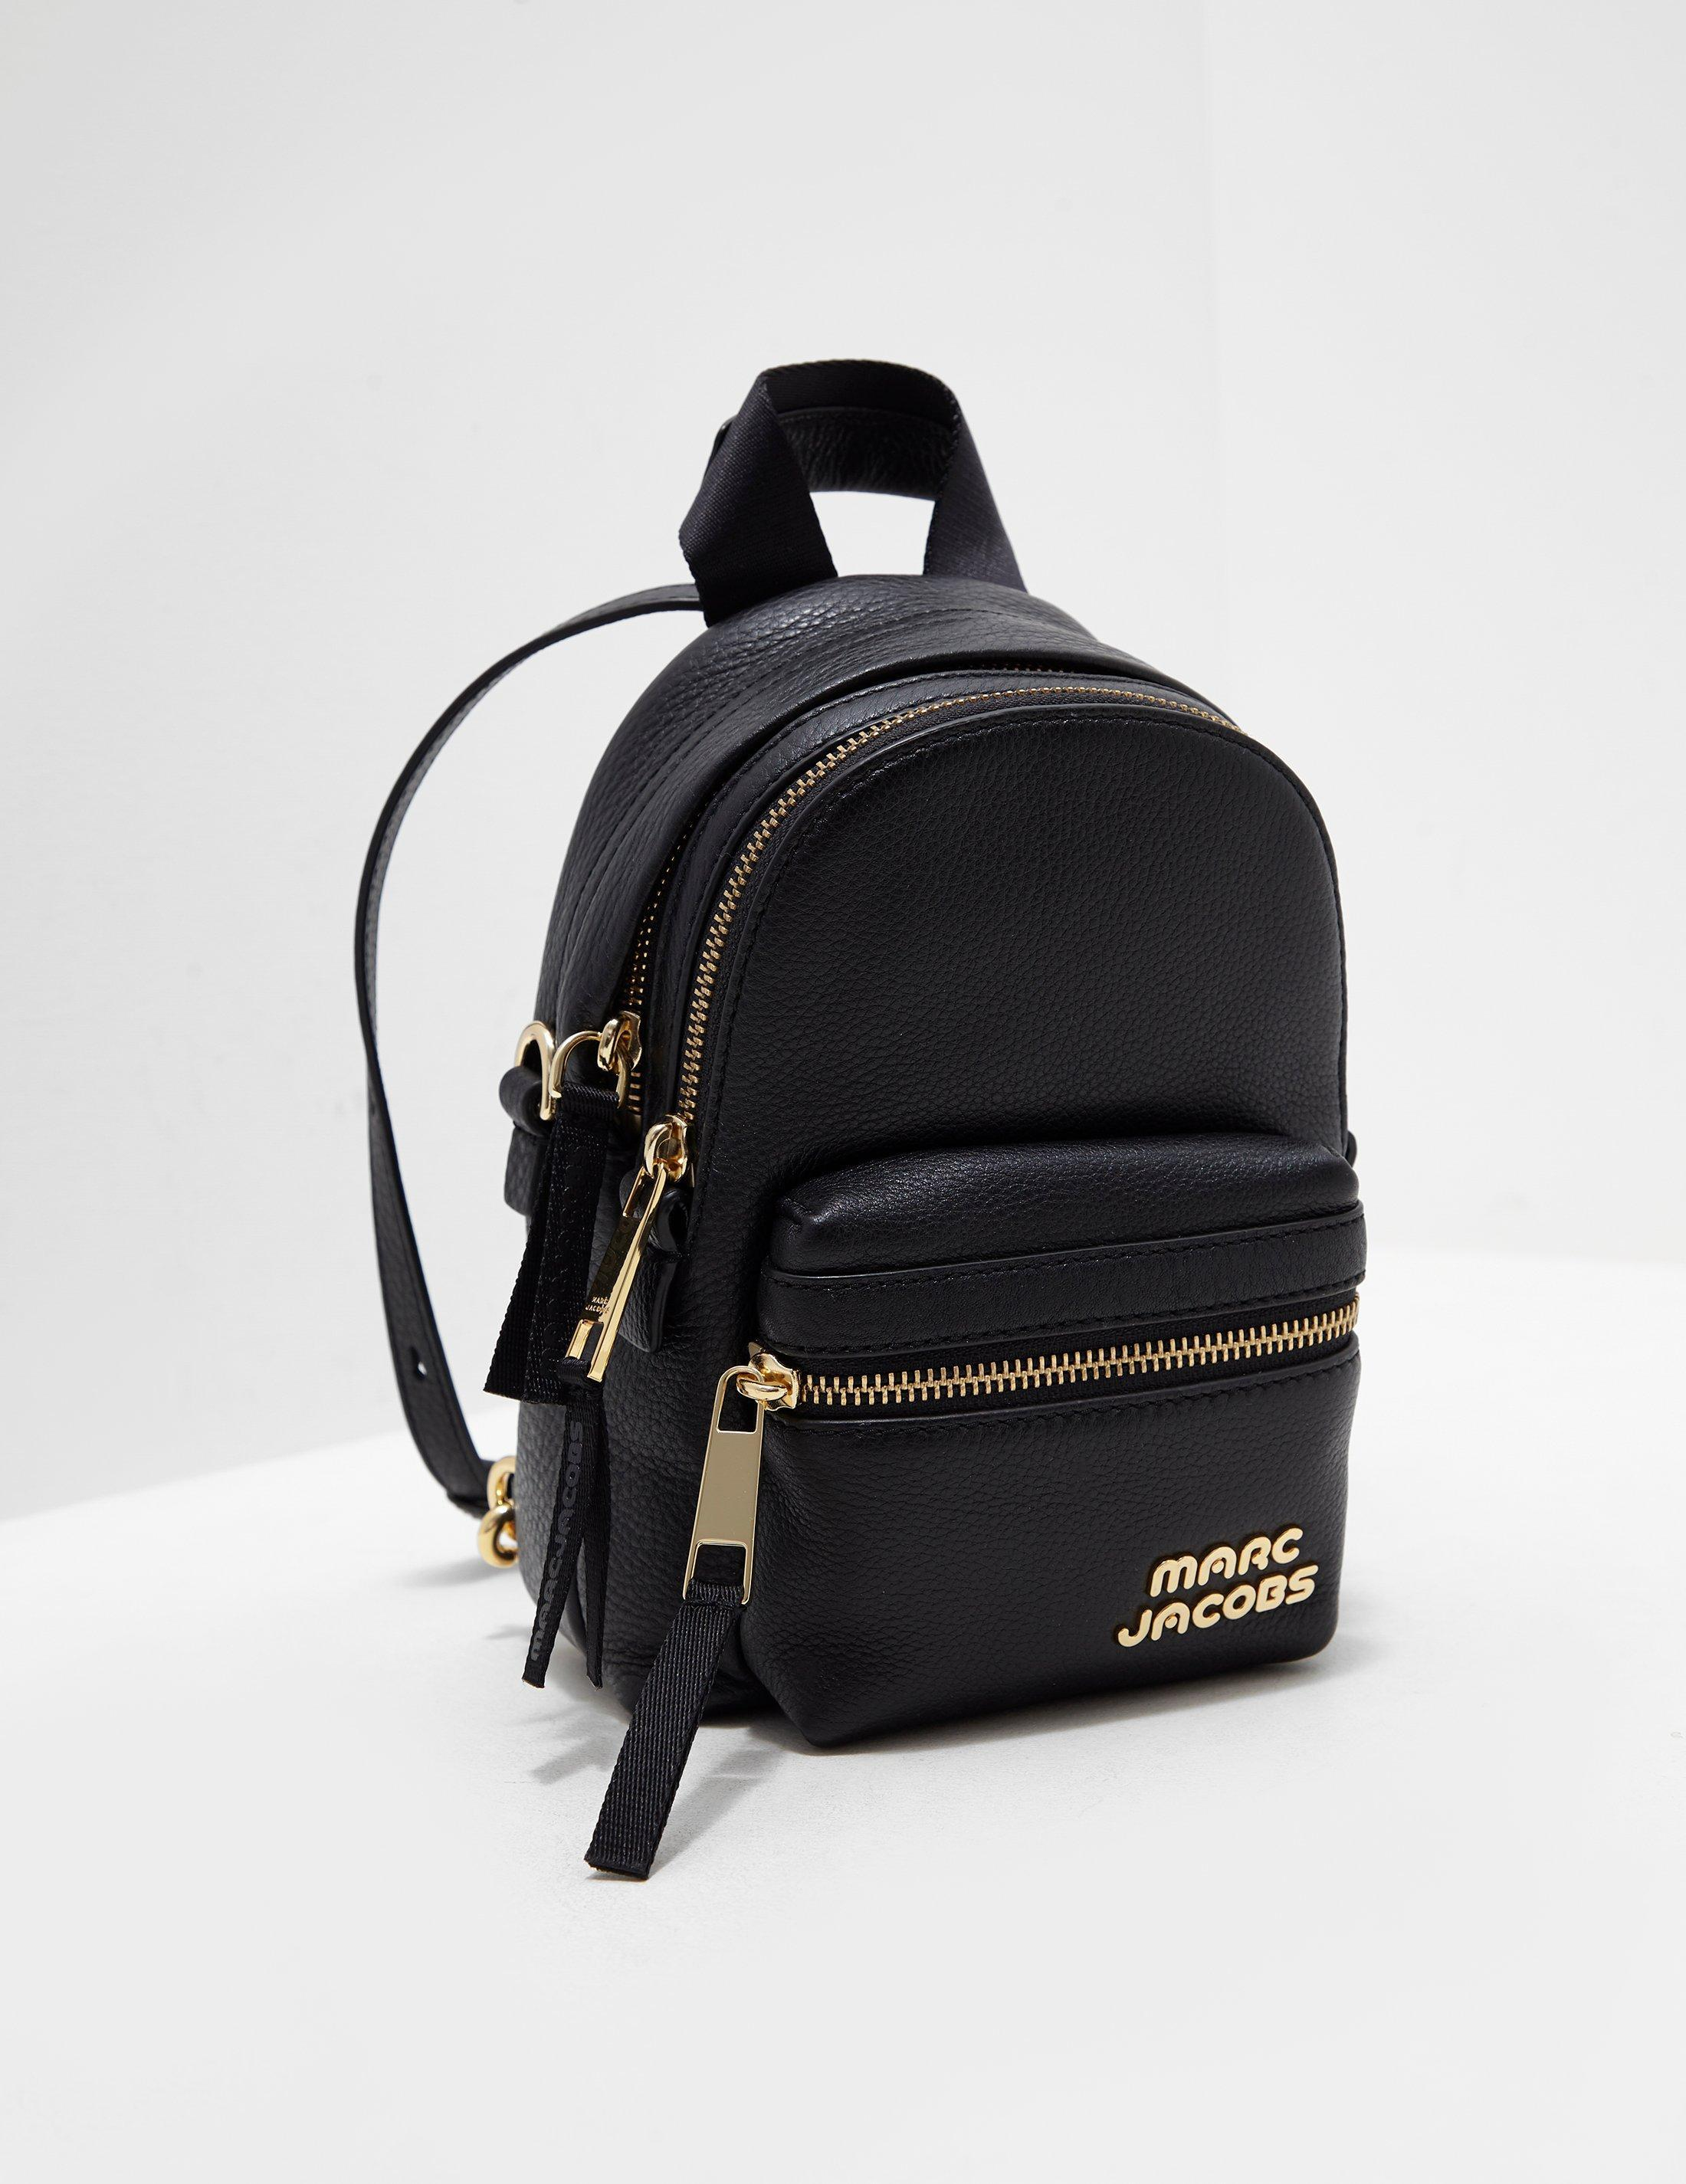 1bf67ef313a9 Marc Jacobs Micro Backpack Black in Black - Save 35% - Lyst